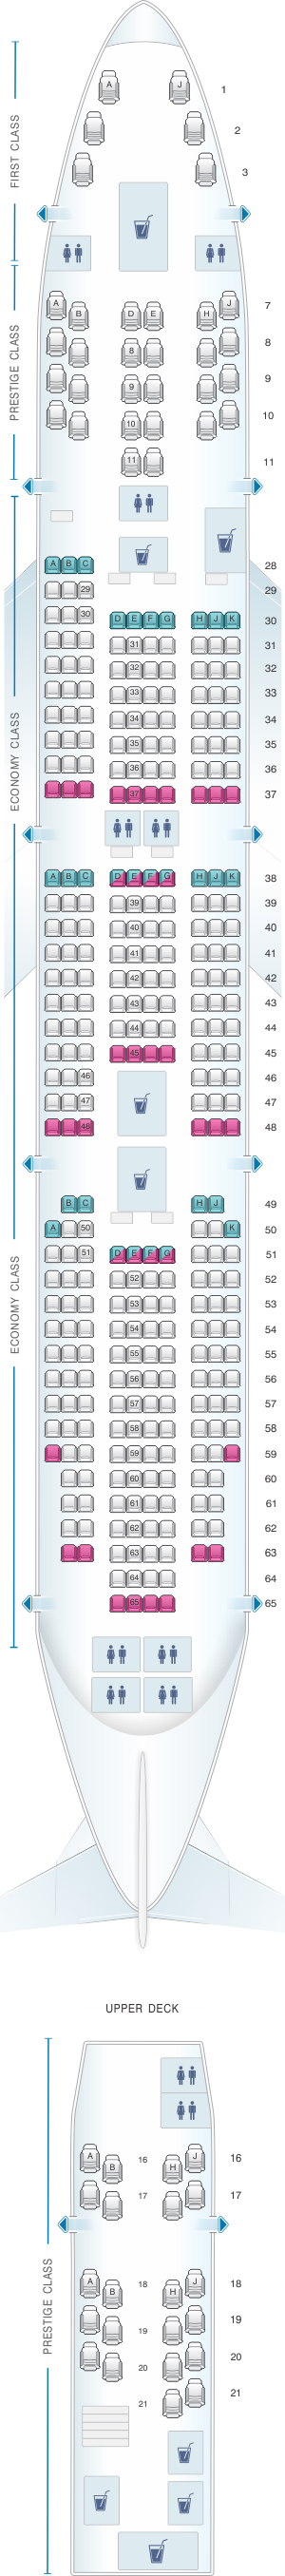 Seat map for Korean Air Boeing B747 400 8i 368PAX